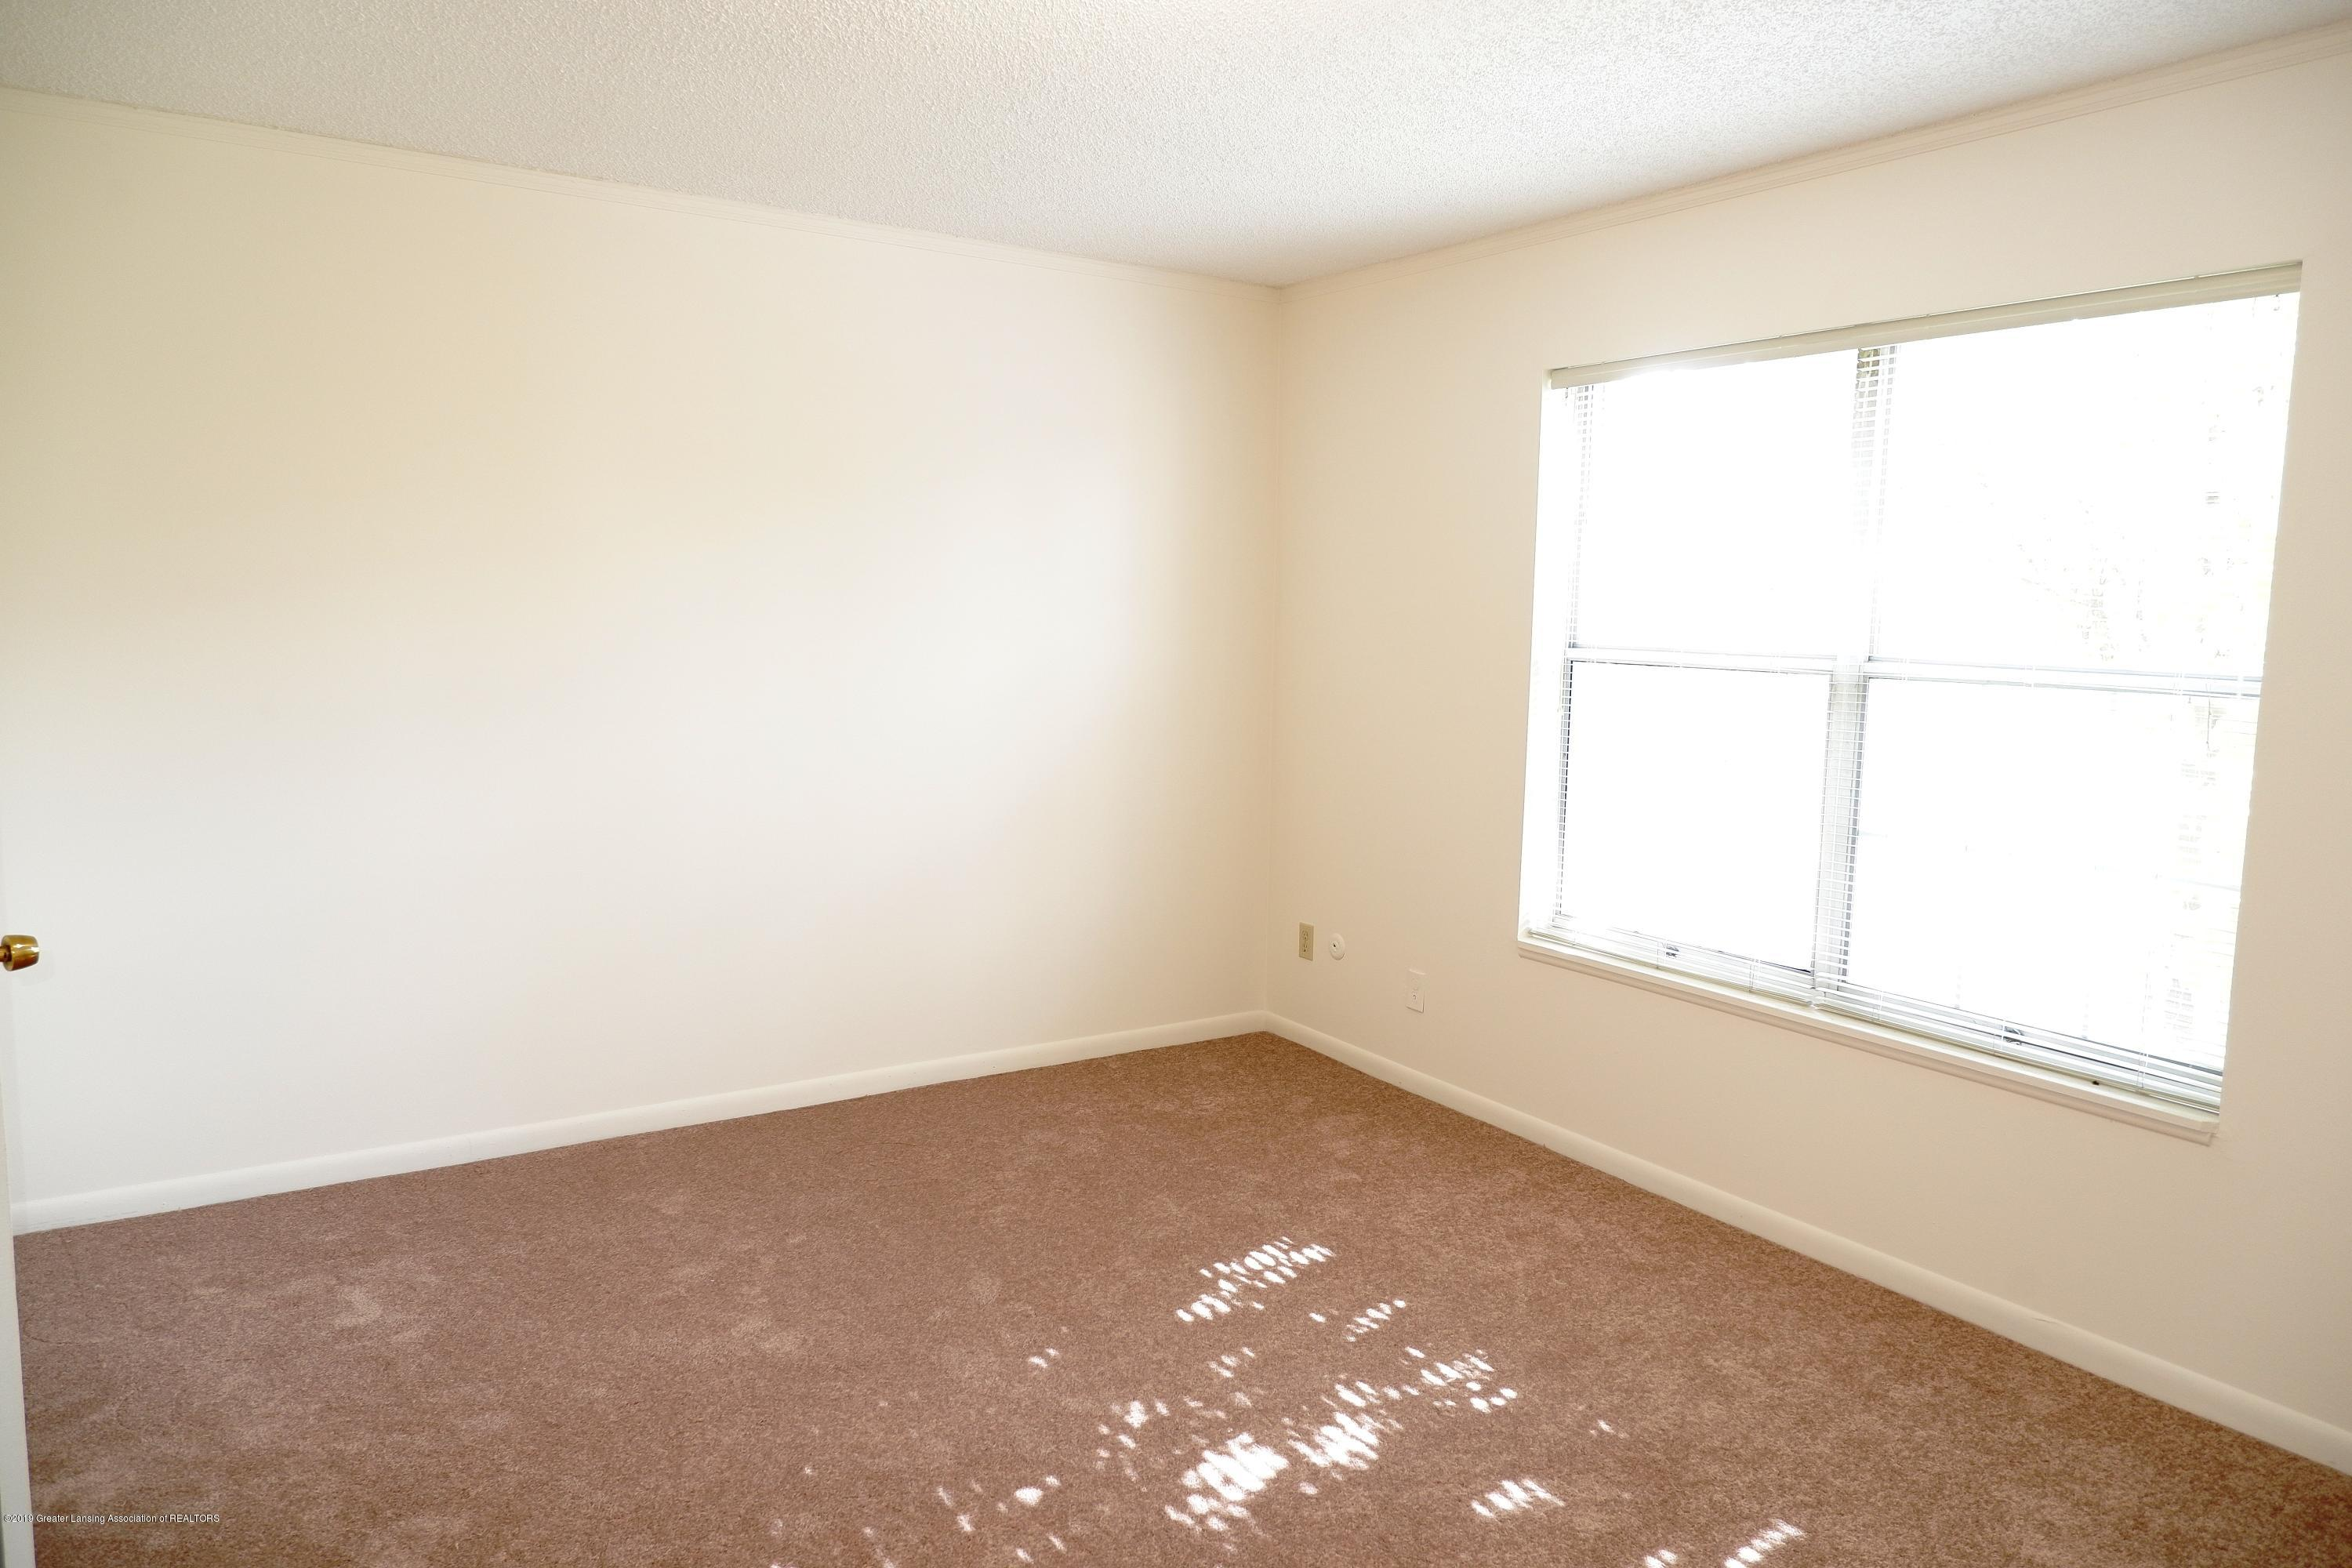 3333 Moores River Dr Apt 508 - Main bedroom - 16